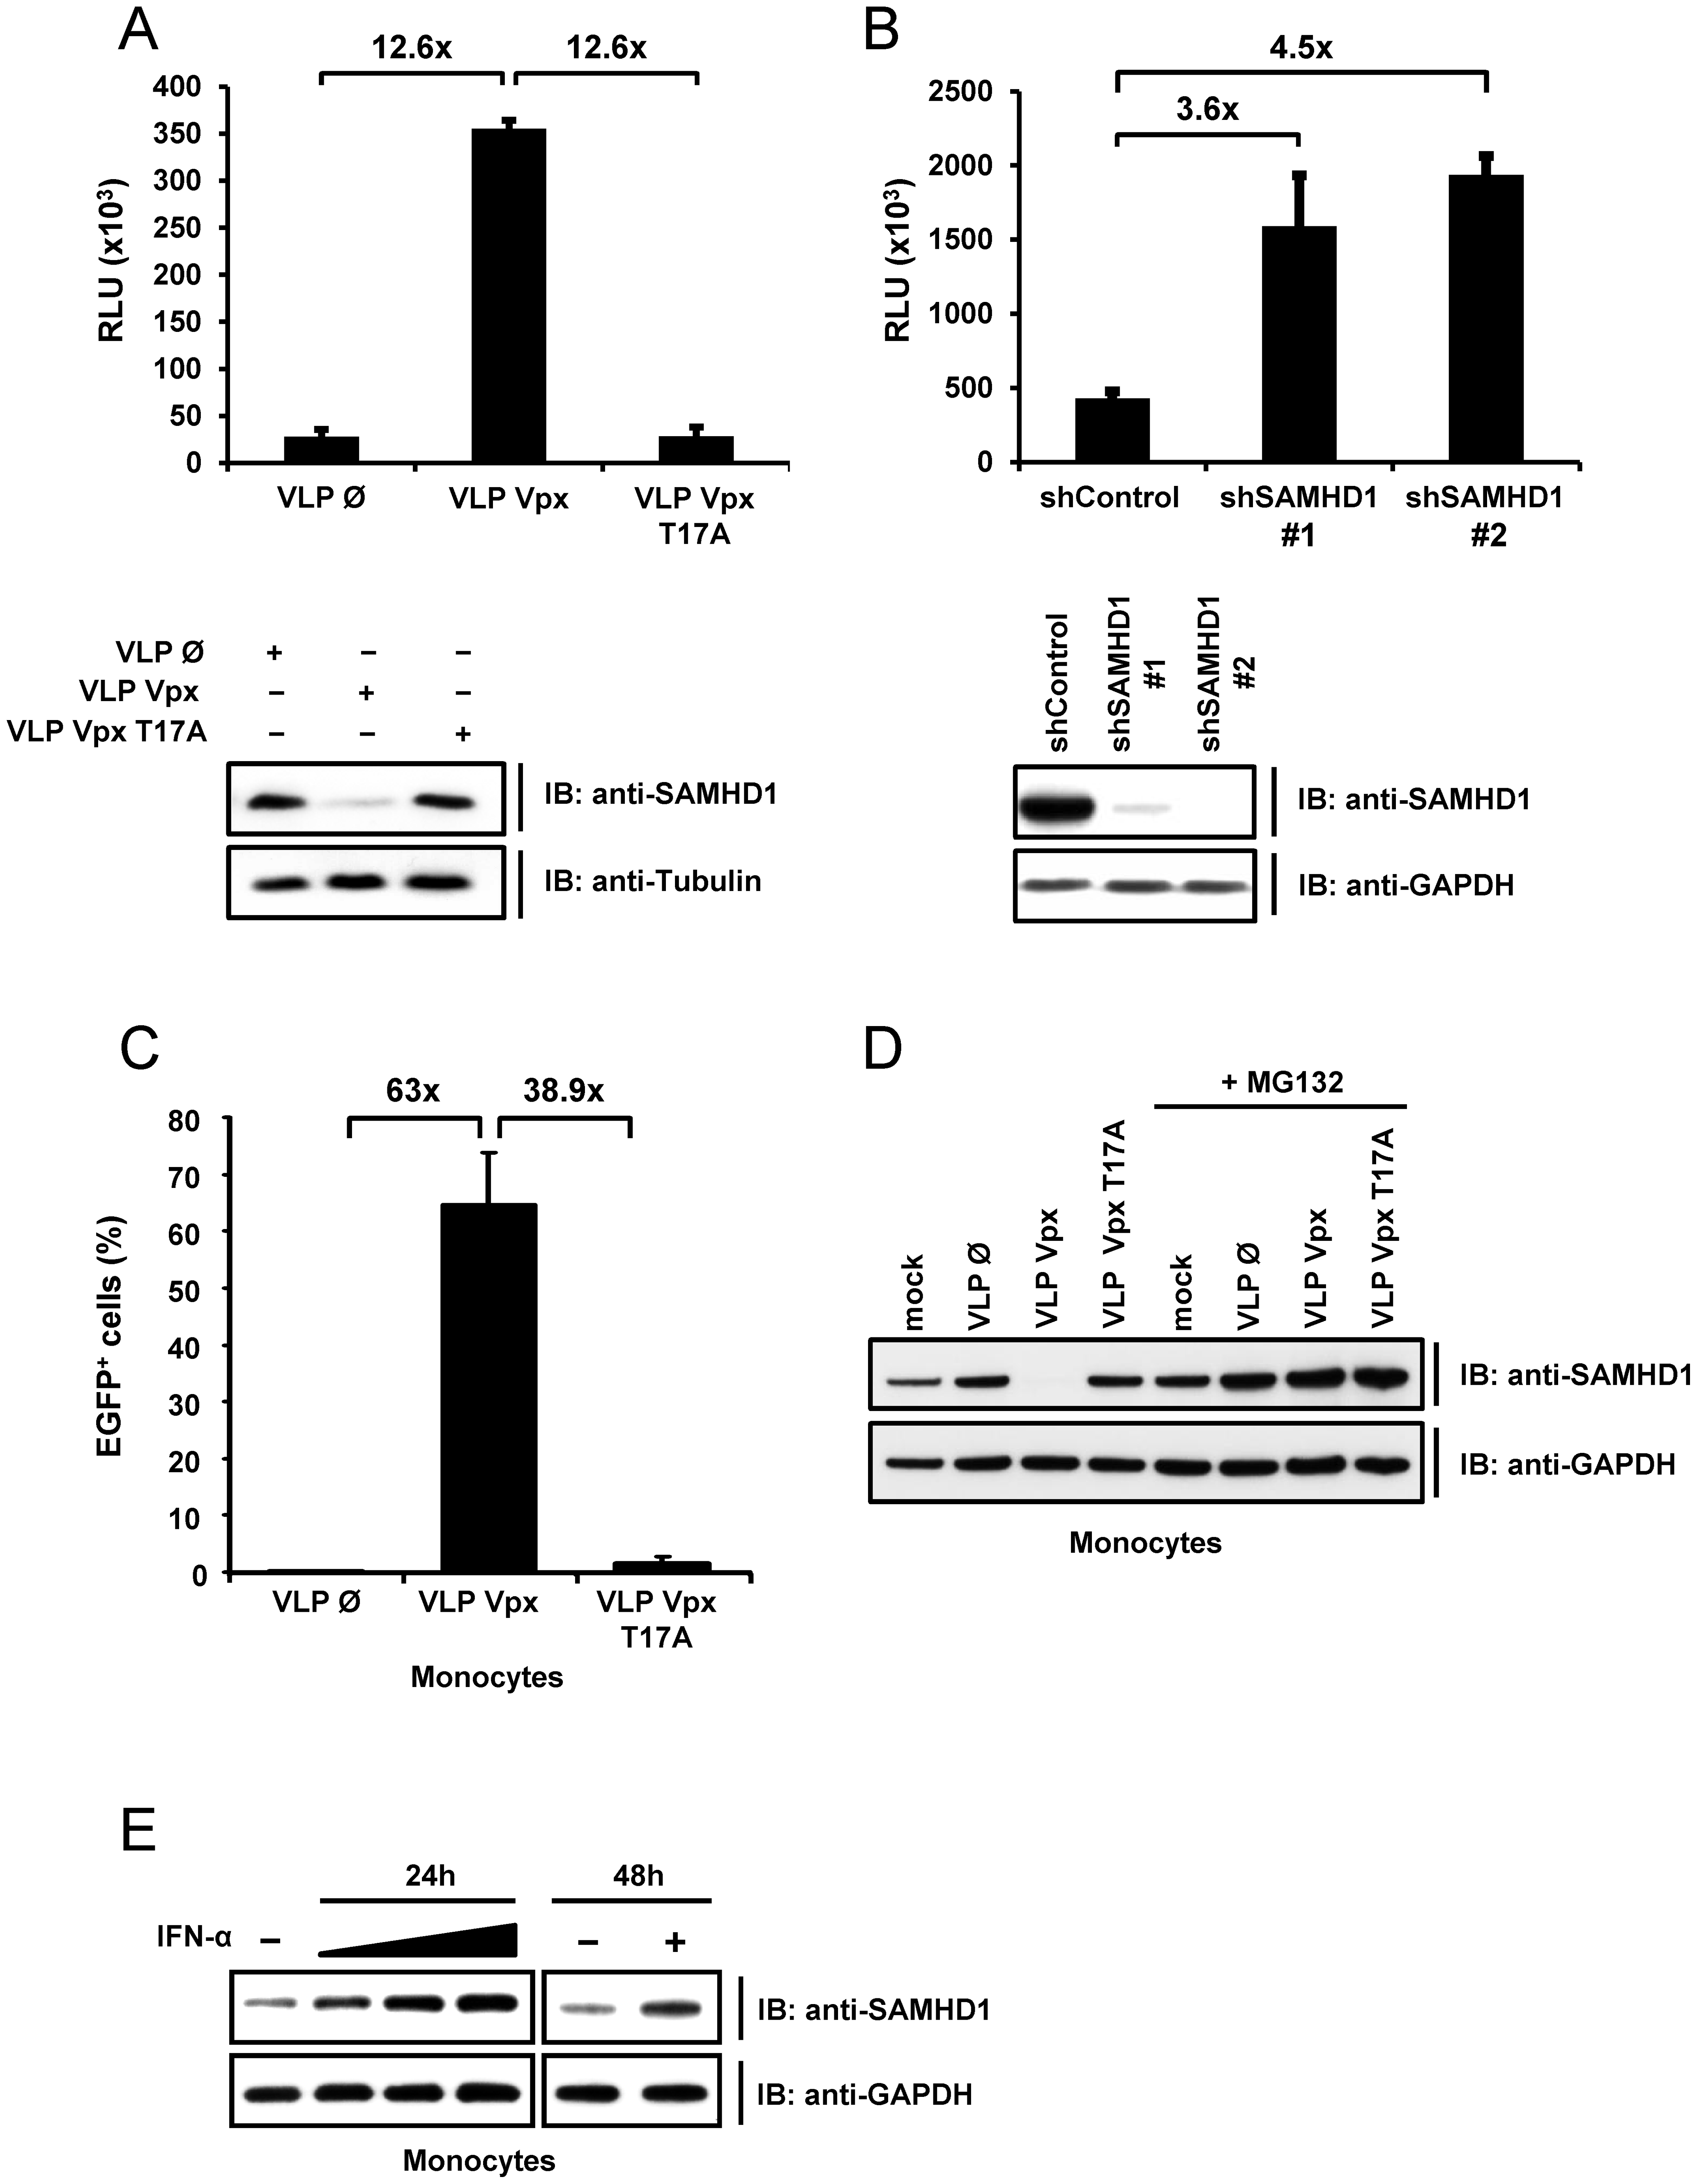 SAMHD1 is a novel interferon-induced restriction factor for HIV-1 in monocytic cells.